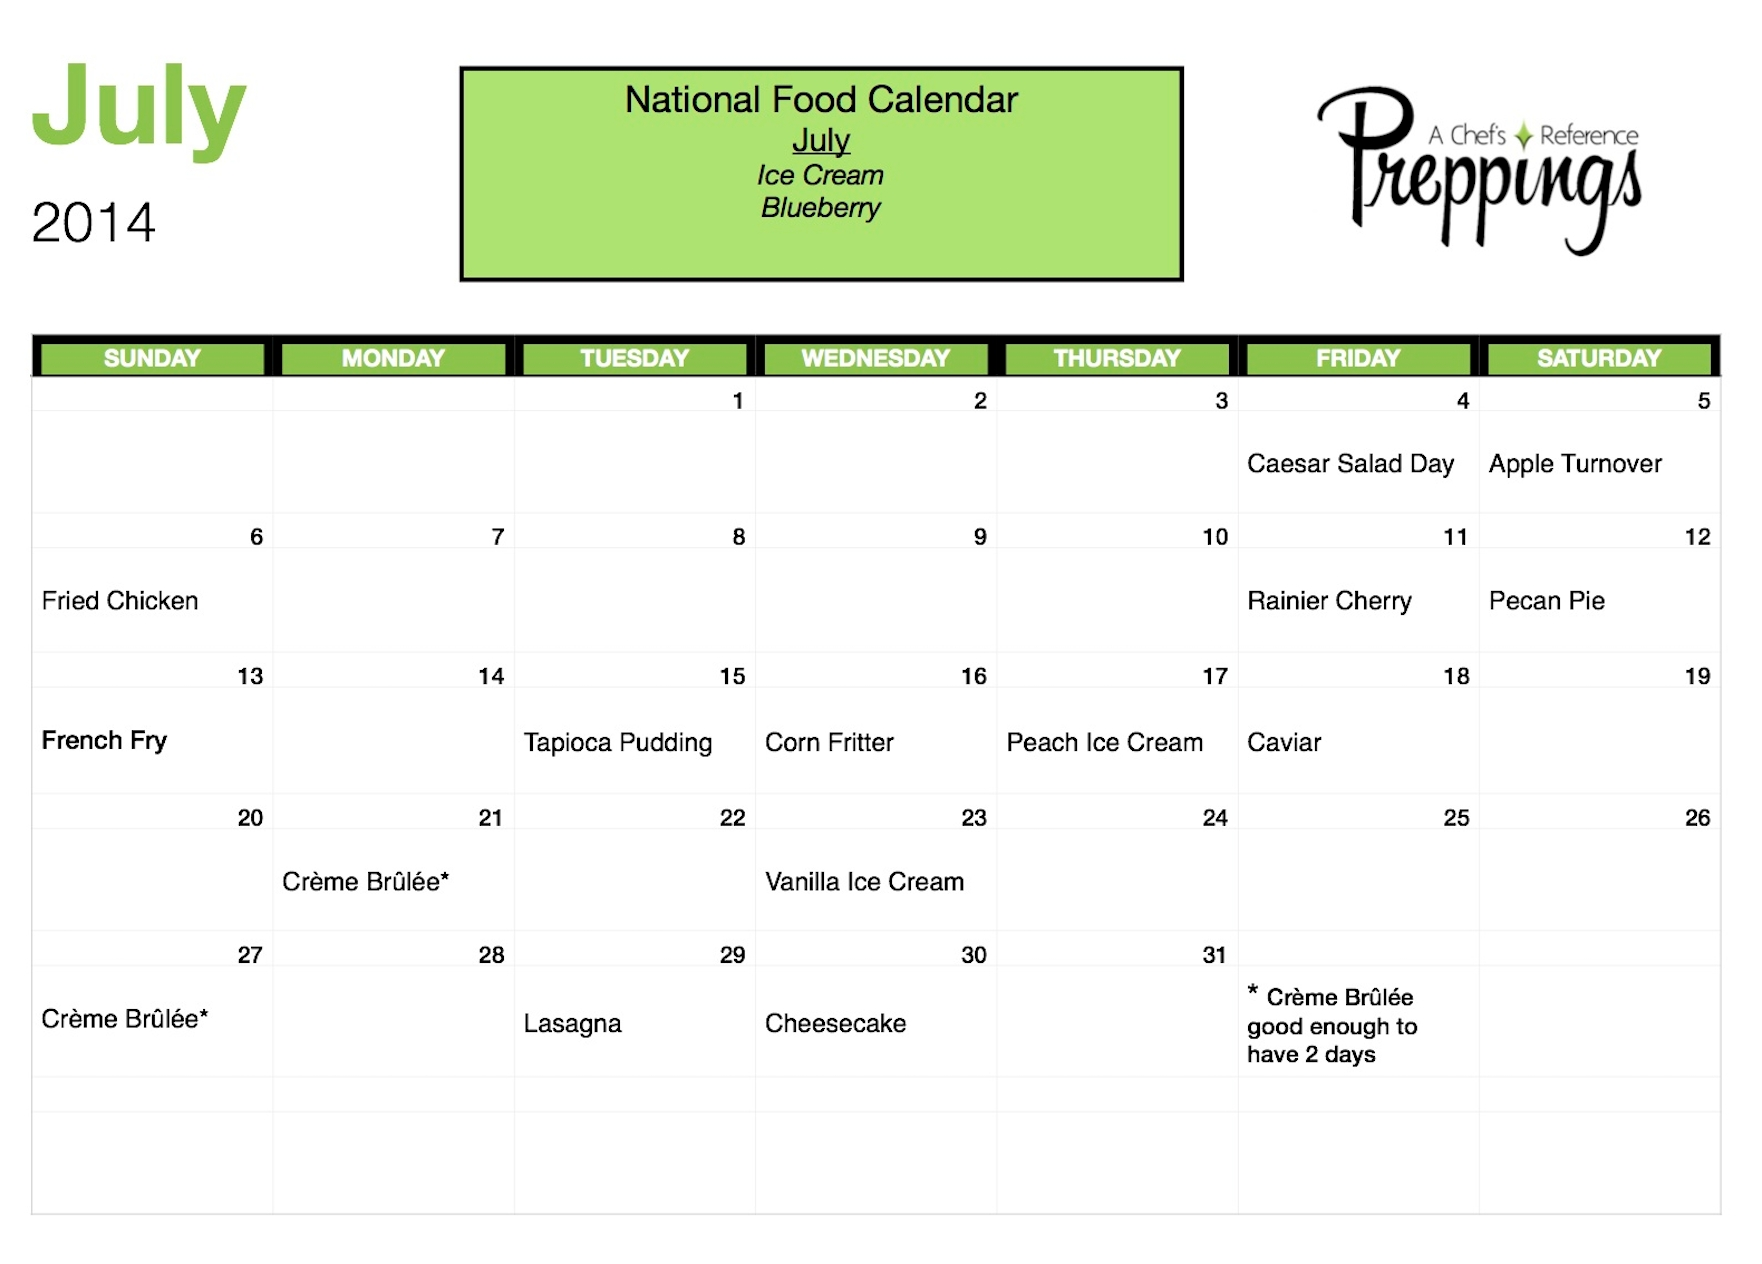 National Food Days Archives - Page 3 Of 3 - Preppings for Calendar Of National Food Days